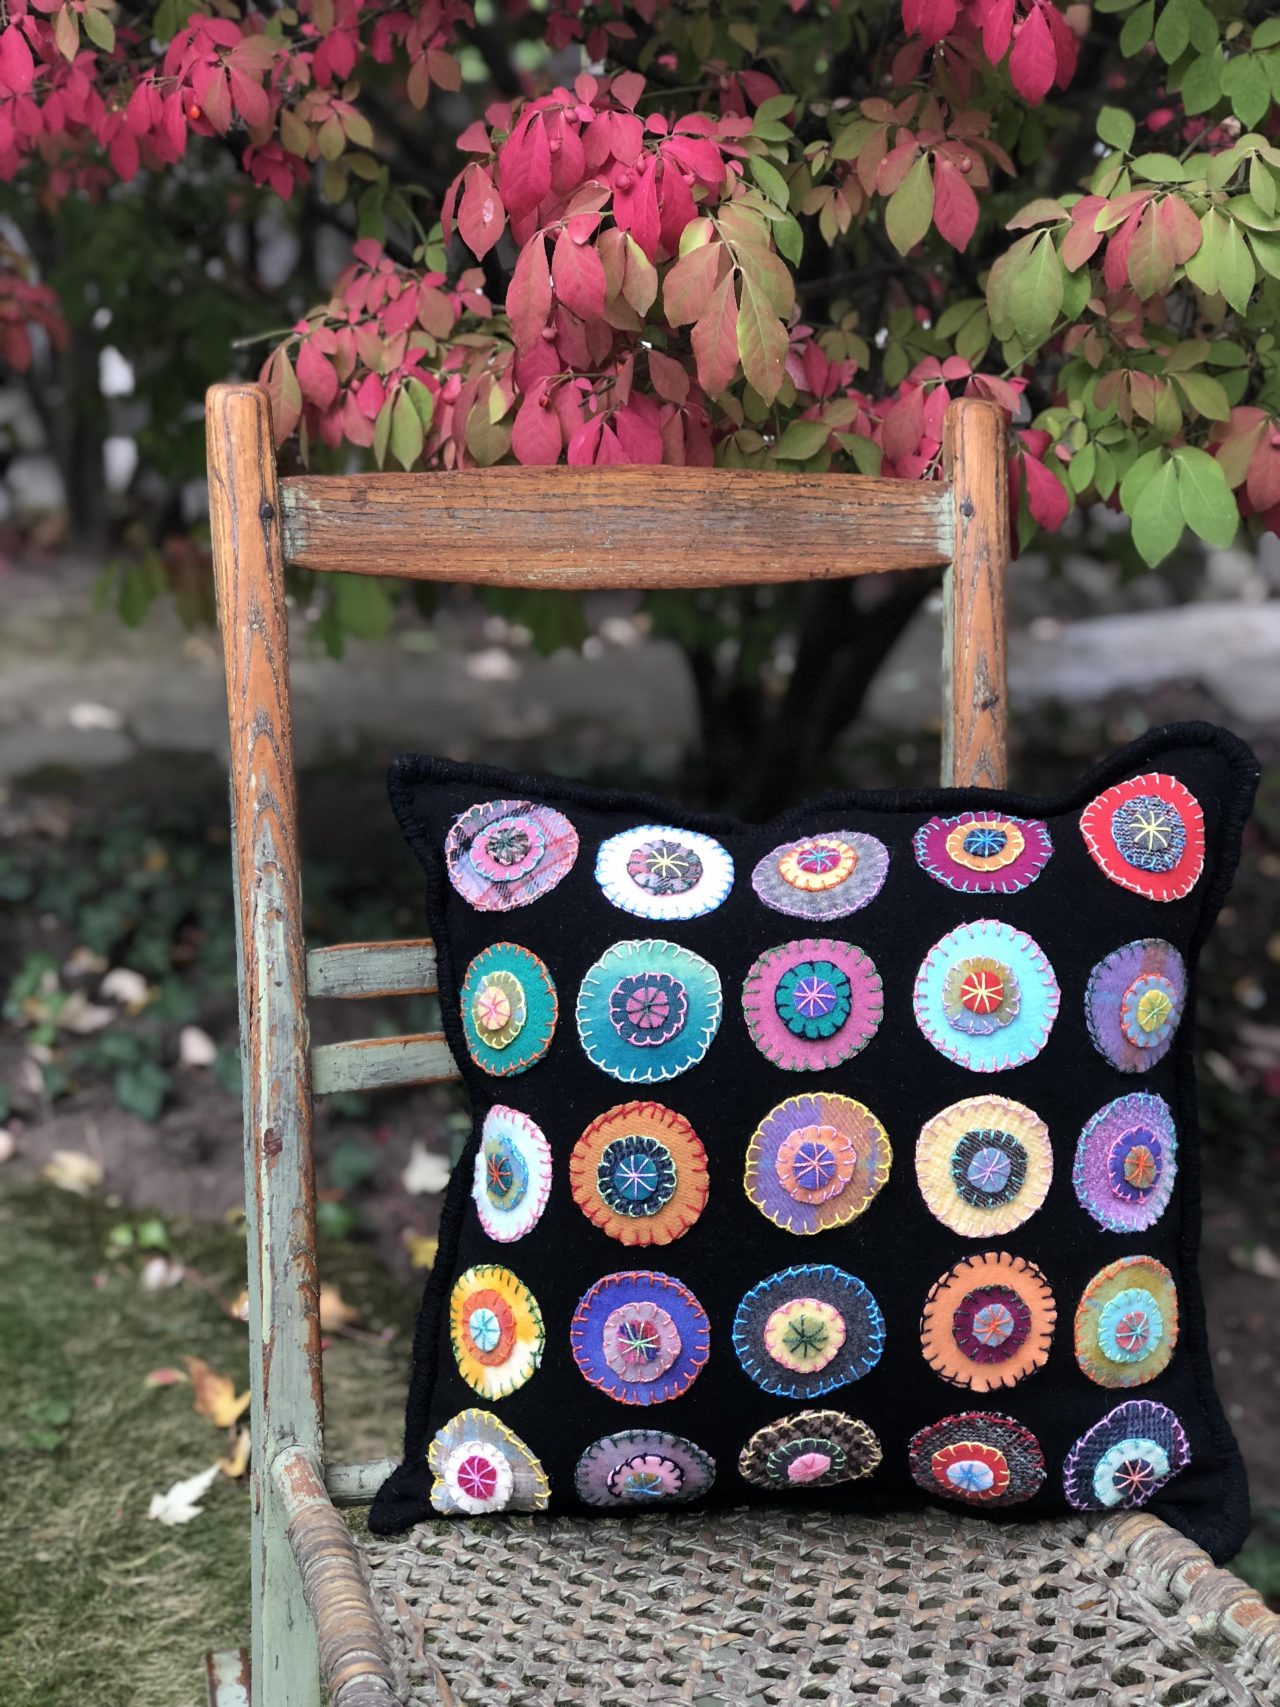 A black cushion with colourful circle pieces of fabric stitched onto it by Yvonne Iten-Scott.